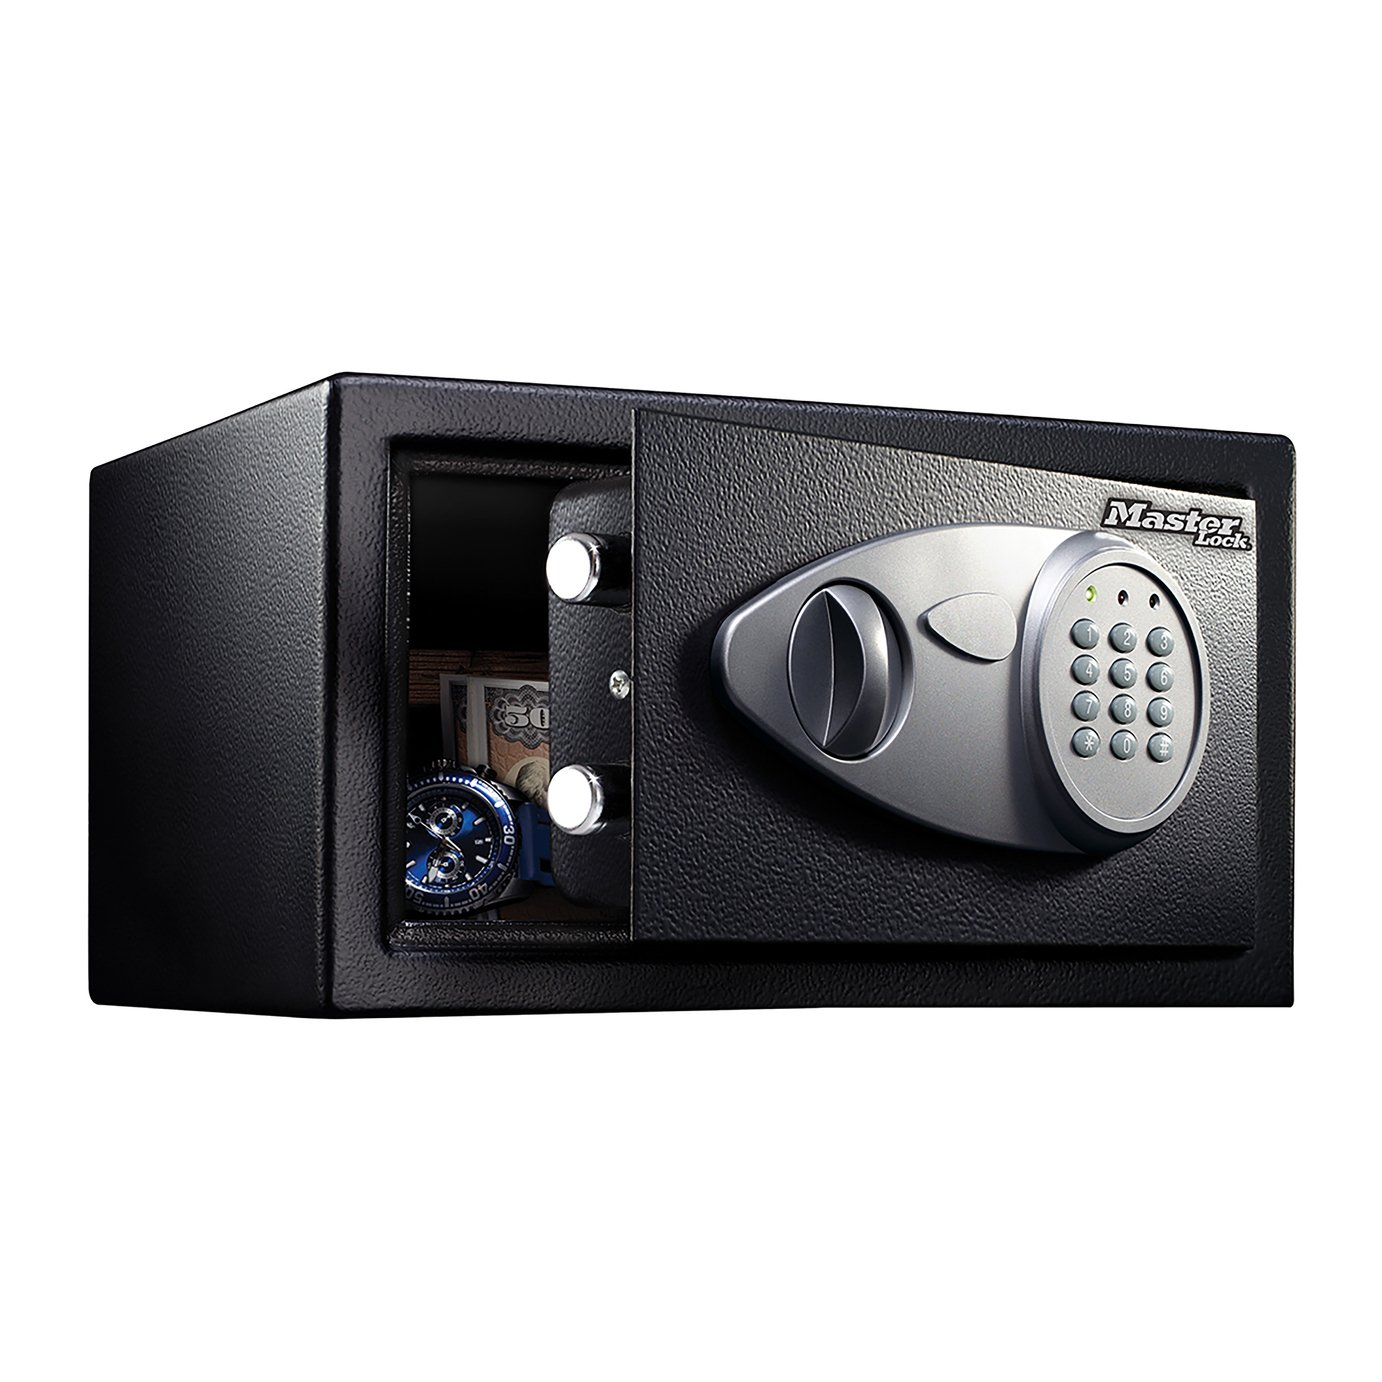 Master Lock Medium Digital Safe